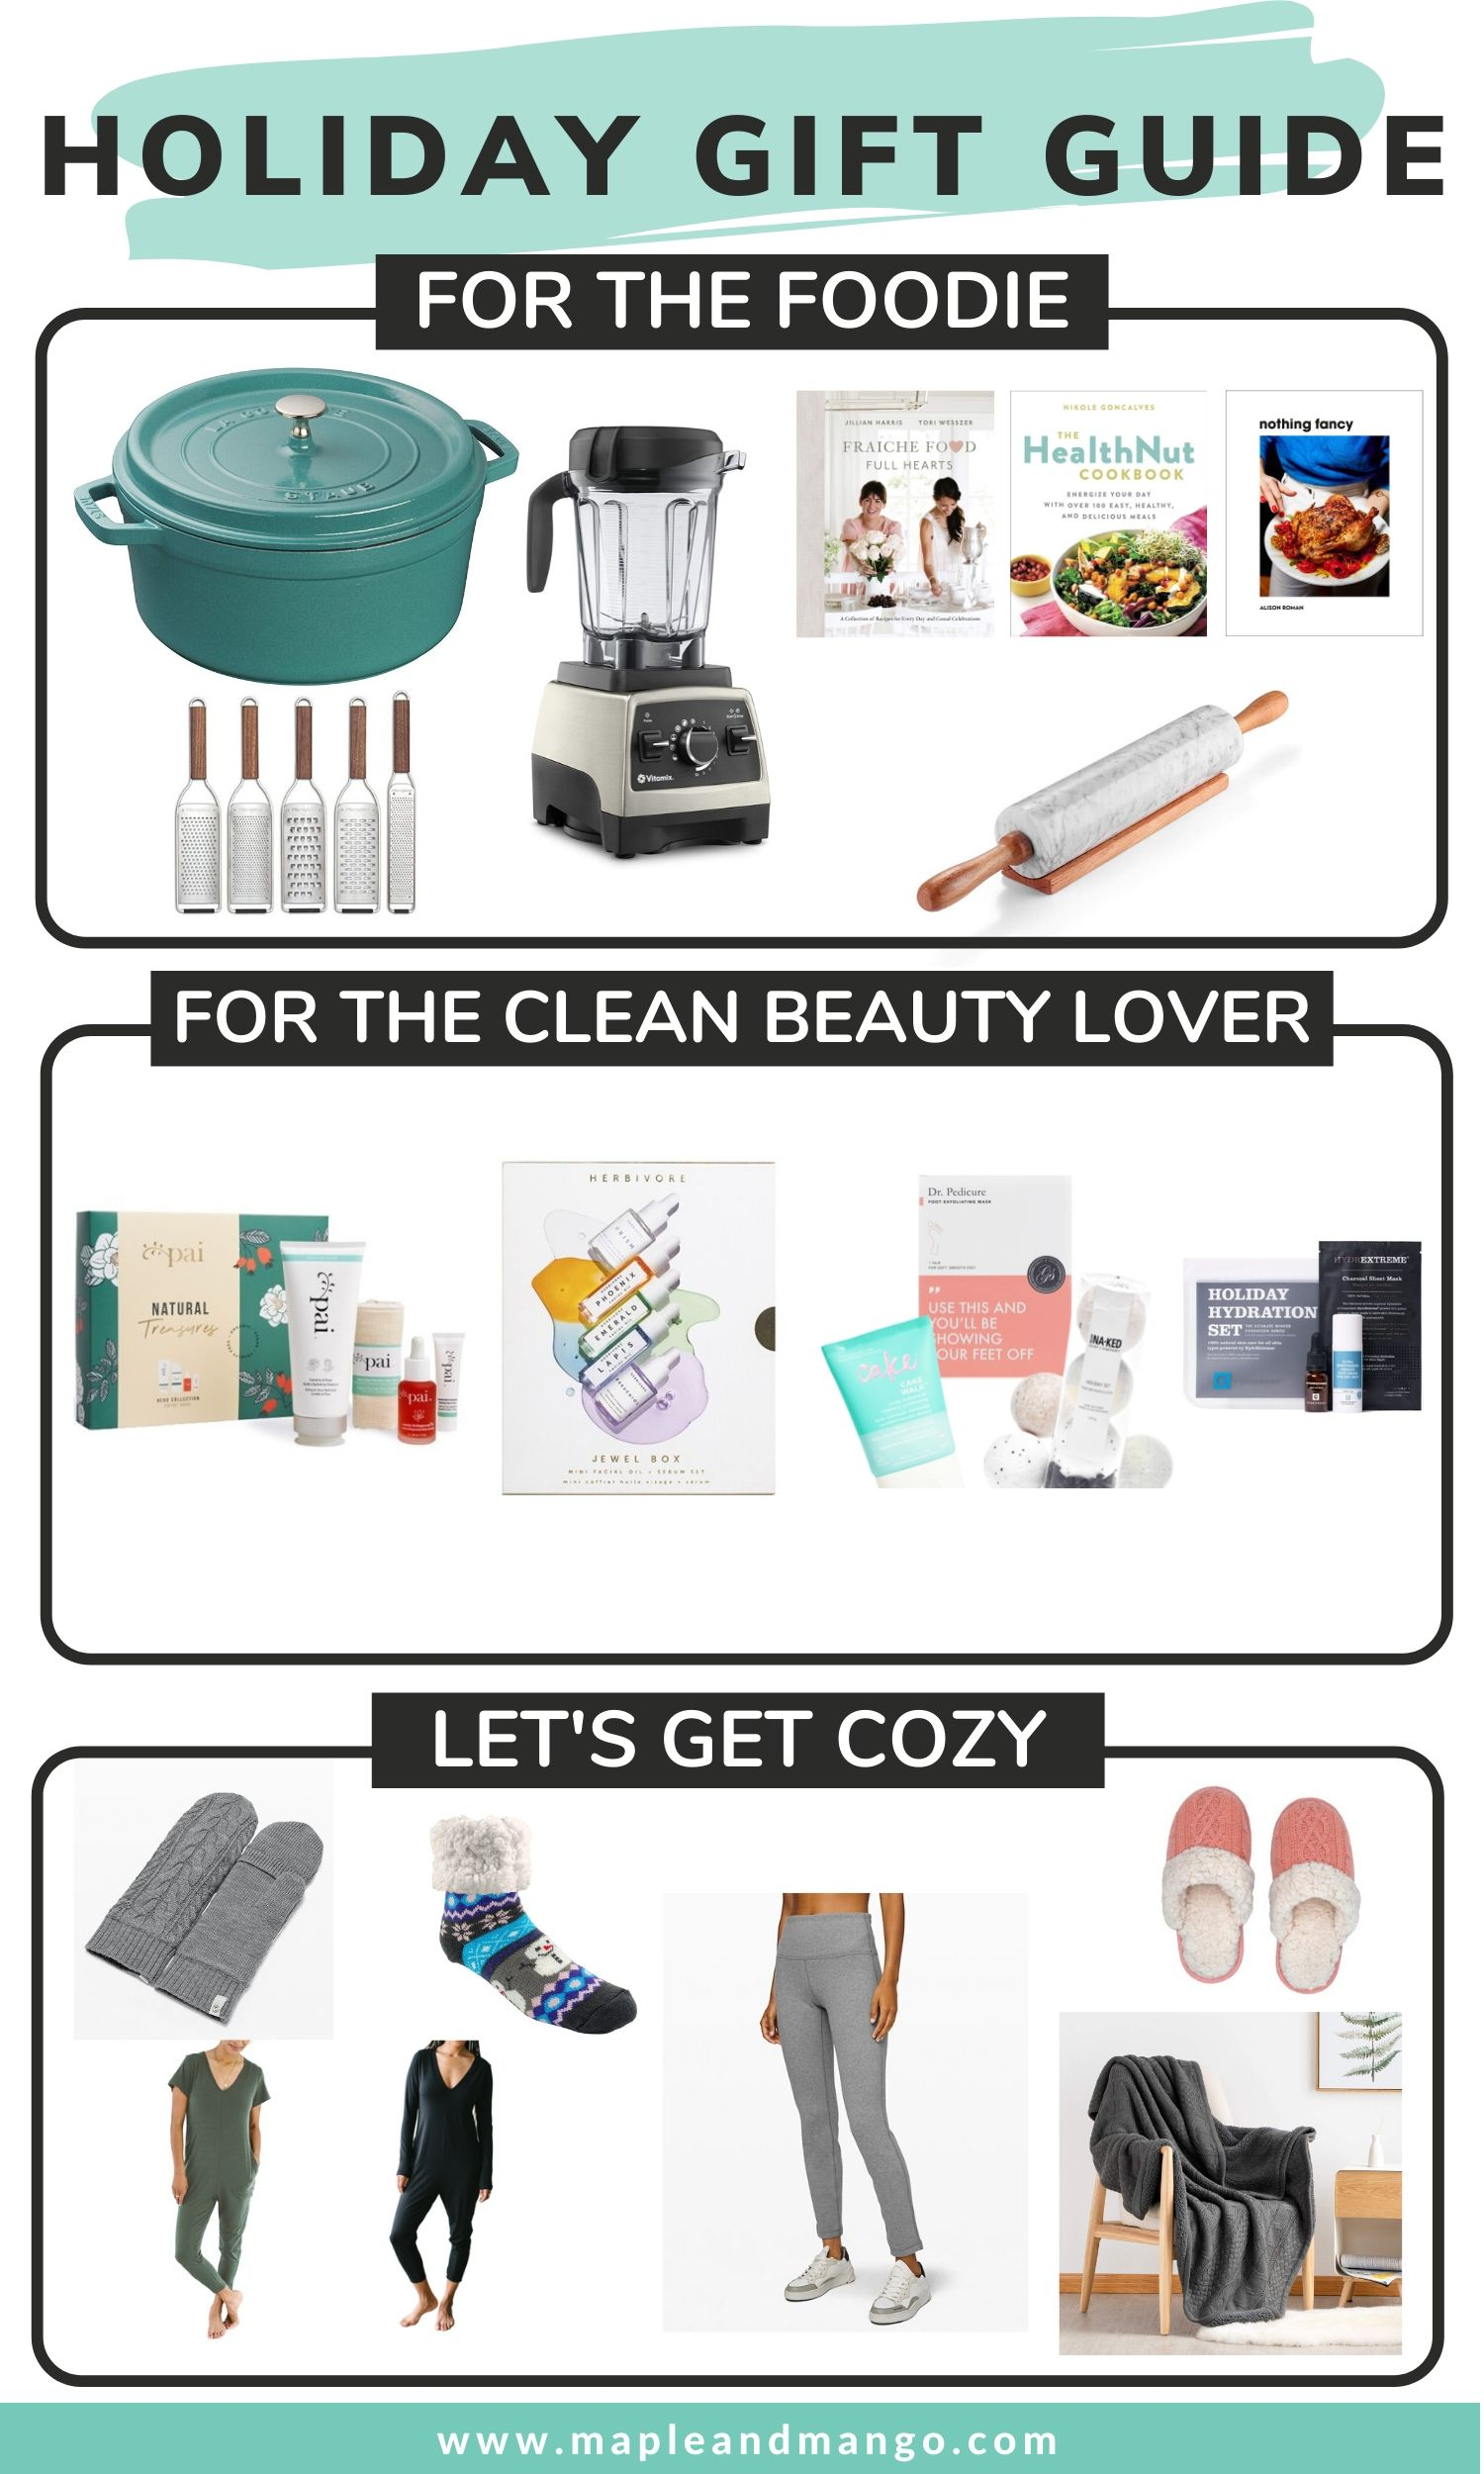 Holiday Gift Guide image showing pictures of gift ideas for the foodie, for the clean beauty lover and for the cozy homebody